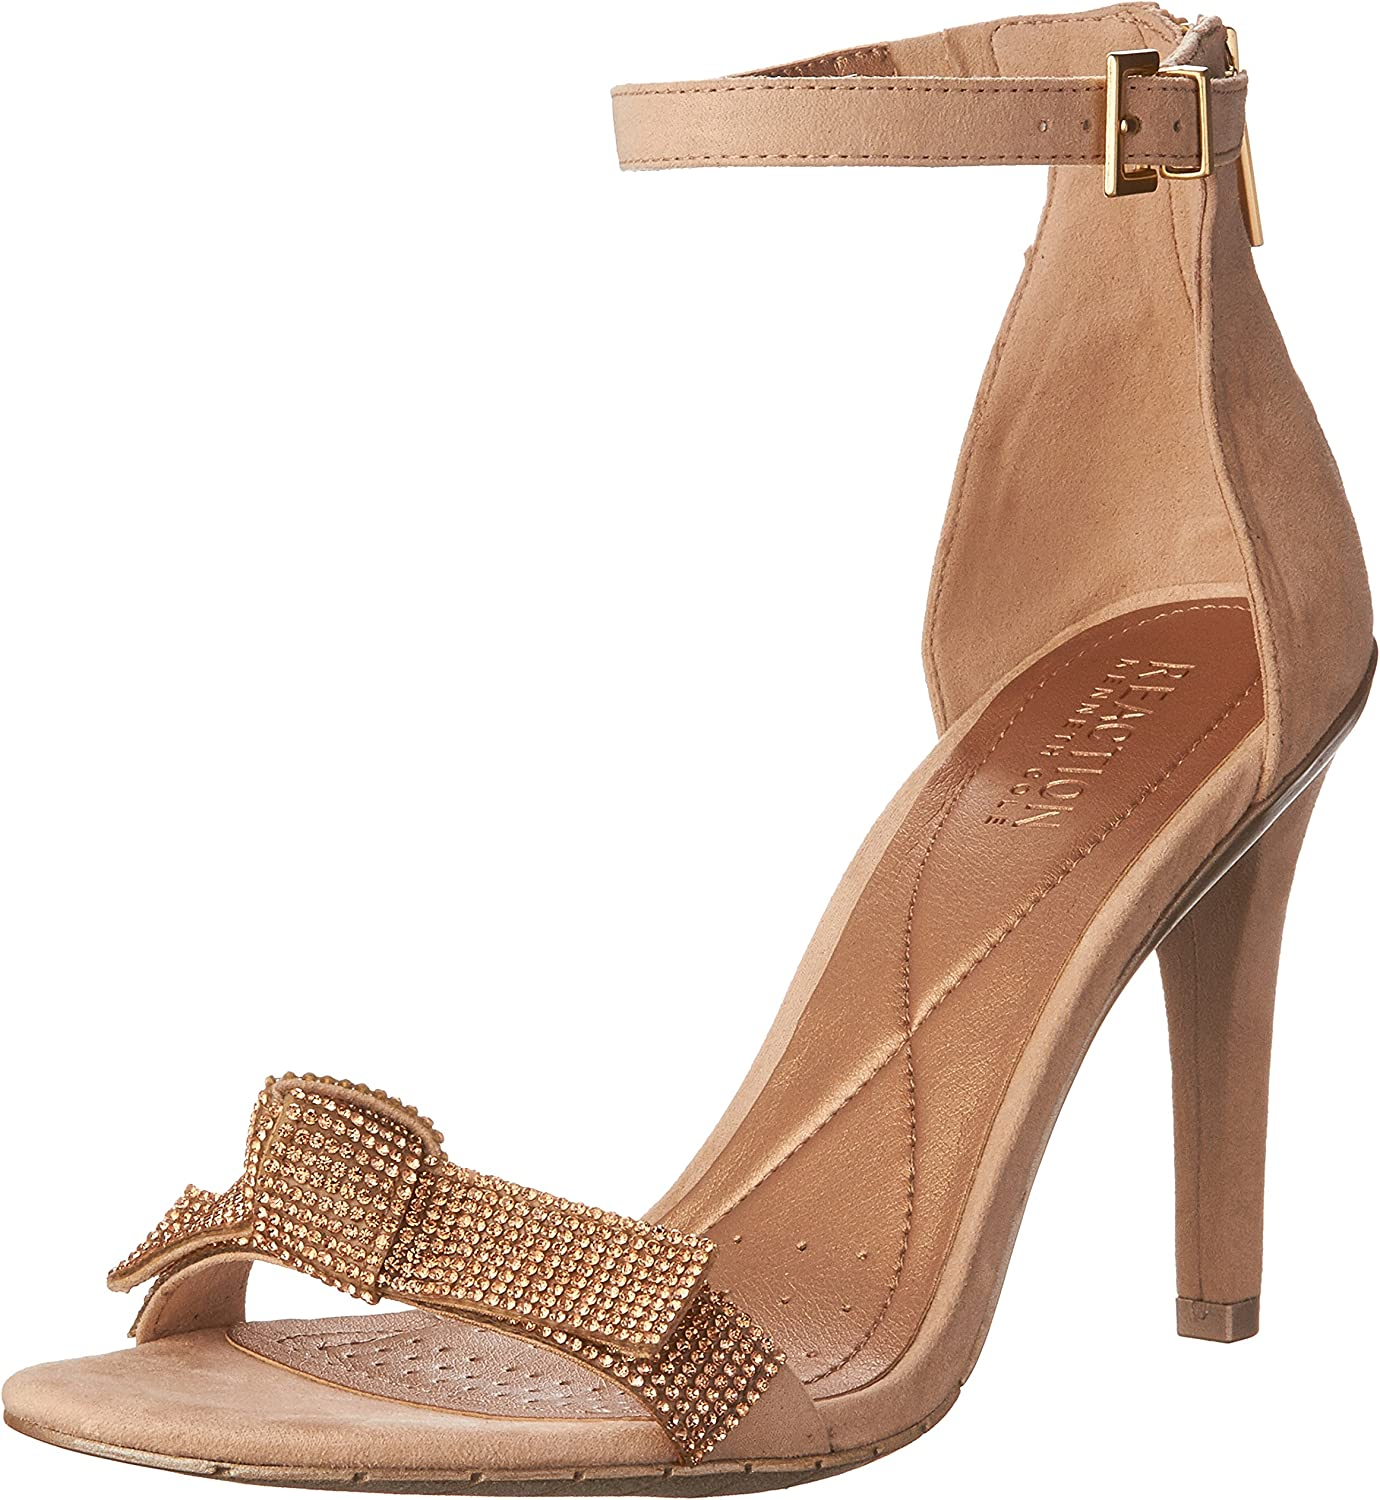 Kenneth Cole REACTION Womens Smash-Ful 3 Fashion Sandals